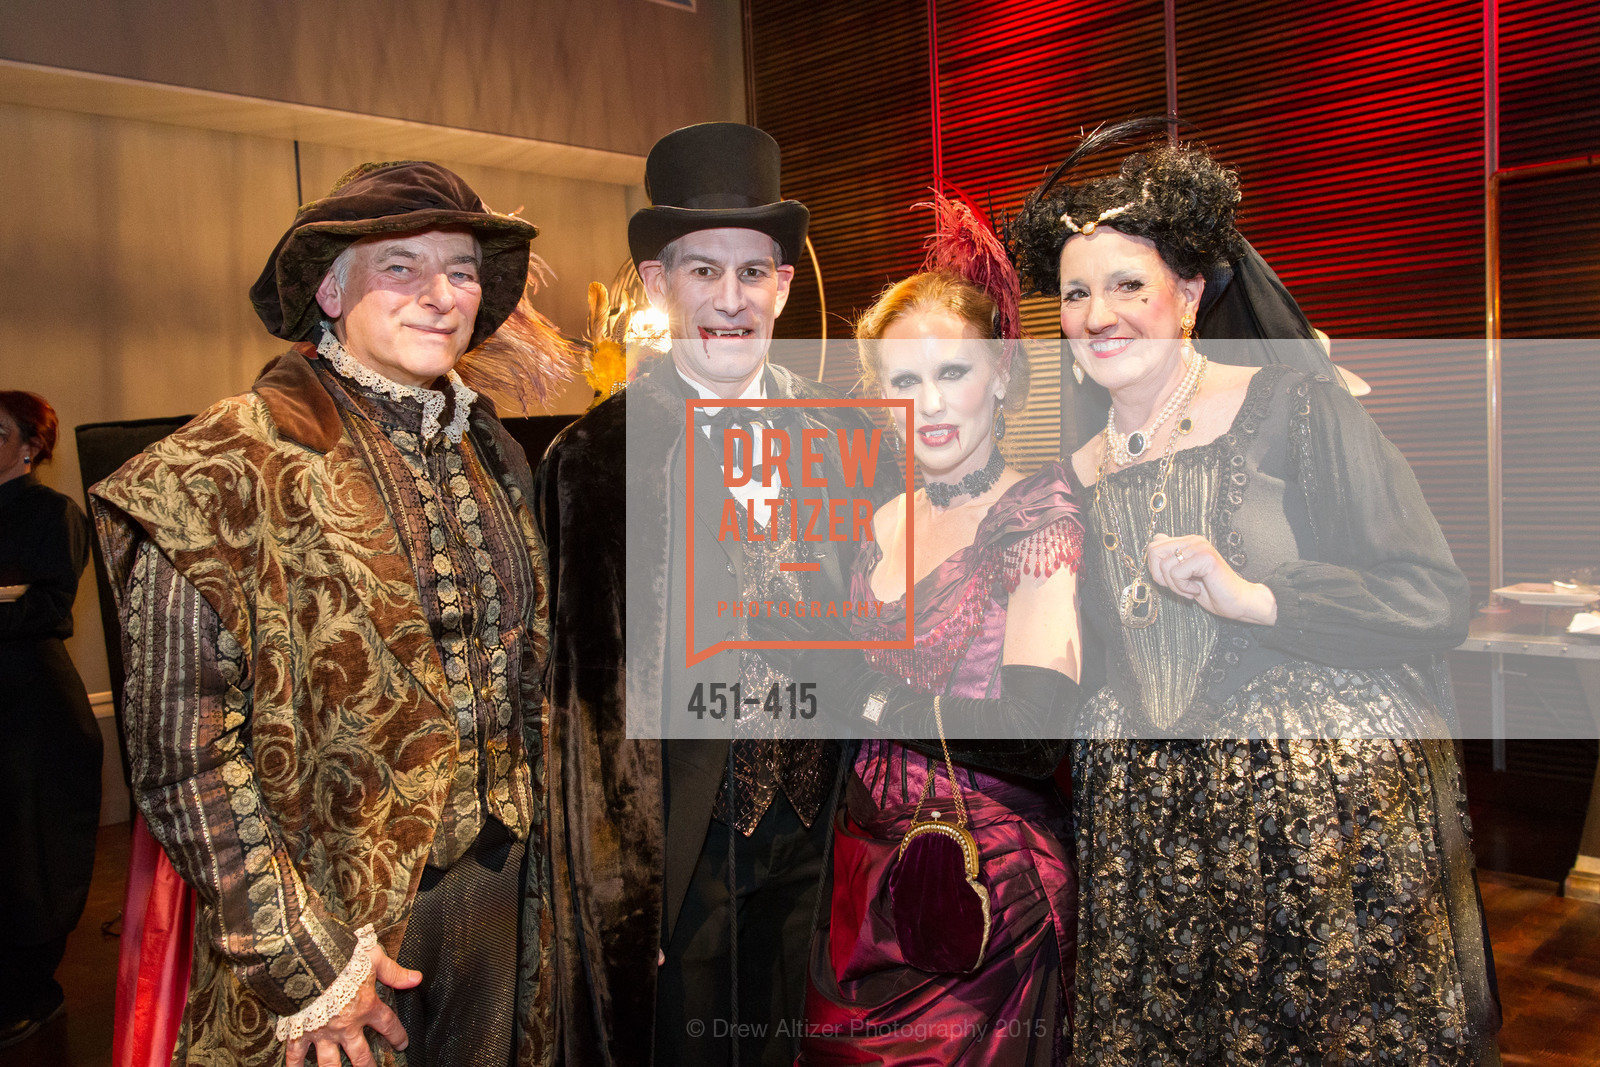 Steve Cookston, Chris Hollenbeck, Holly Hollenbeck, Shirley Cookston, SPOOKED AT THE STRAND Presented by the American Conservatory Theater, The Strand Theater. 1127 Market Street, October 26th, 2015,Drew Altizer, Drew Altizer Photography, full-service agency, private events, San Francisco photographer, photographer california